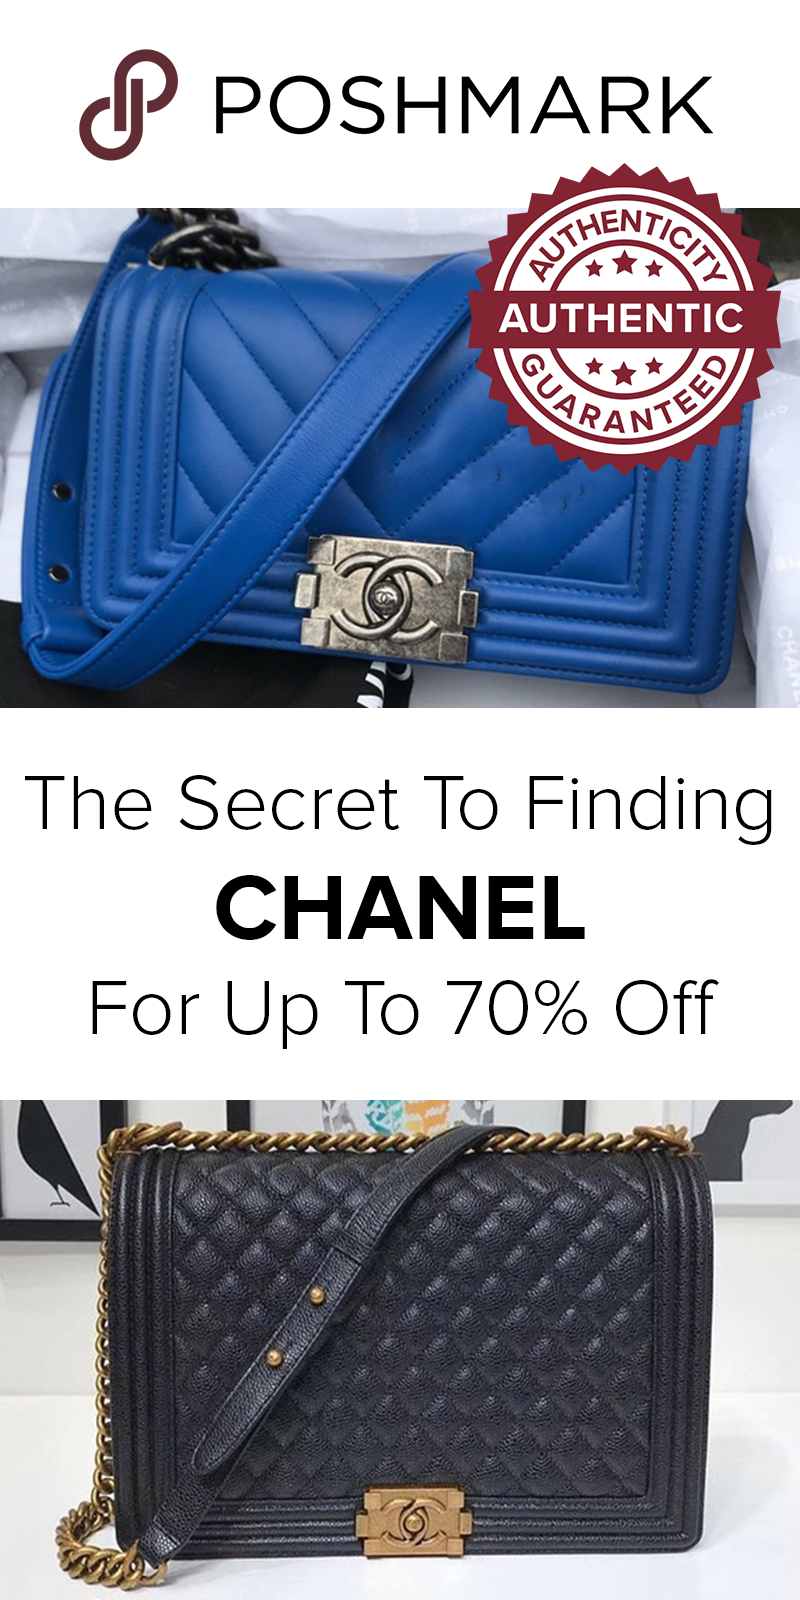 Find Pre Owned Chanel Handbags For Prices On Poshmark Get Your Designer Purse Up To 70 Off Retail When You The